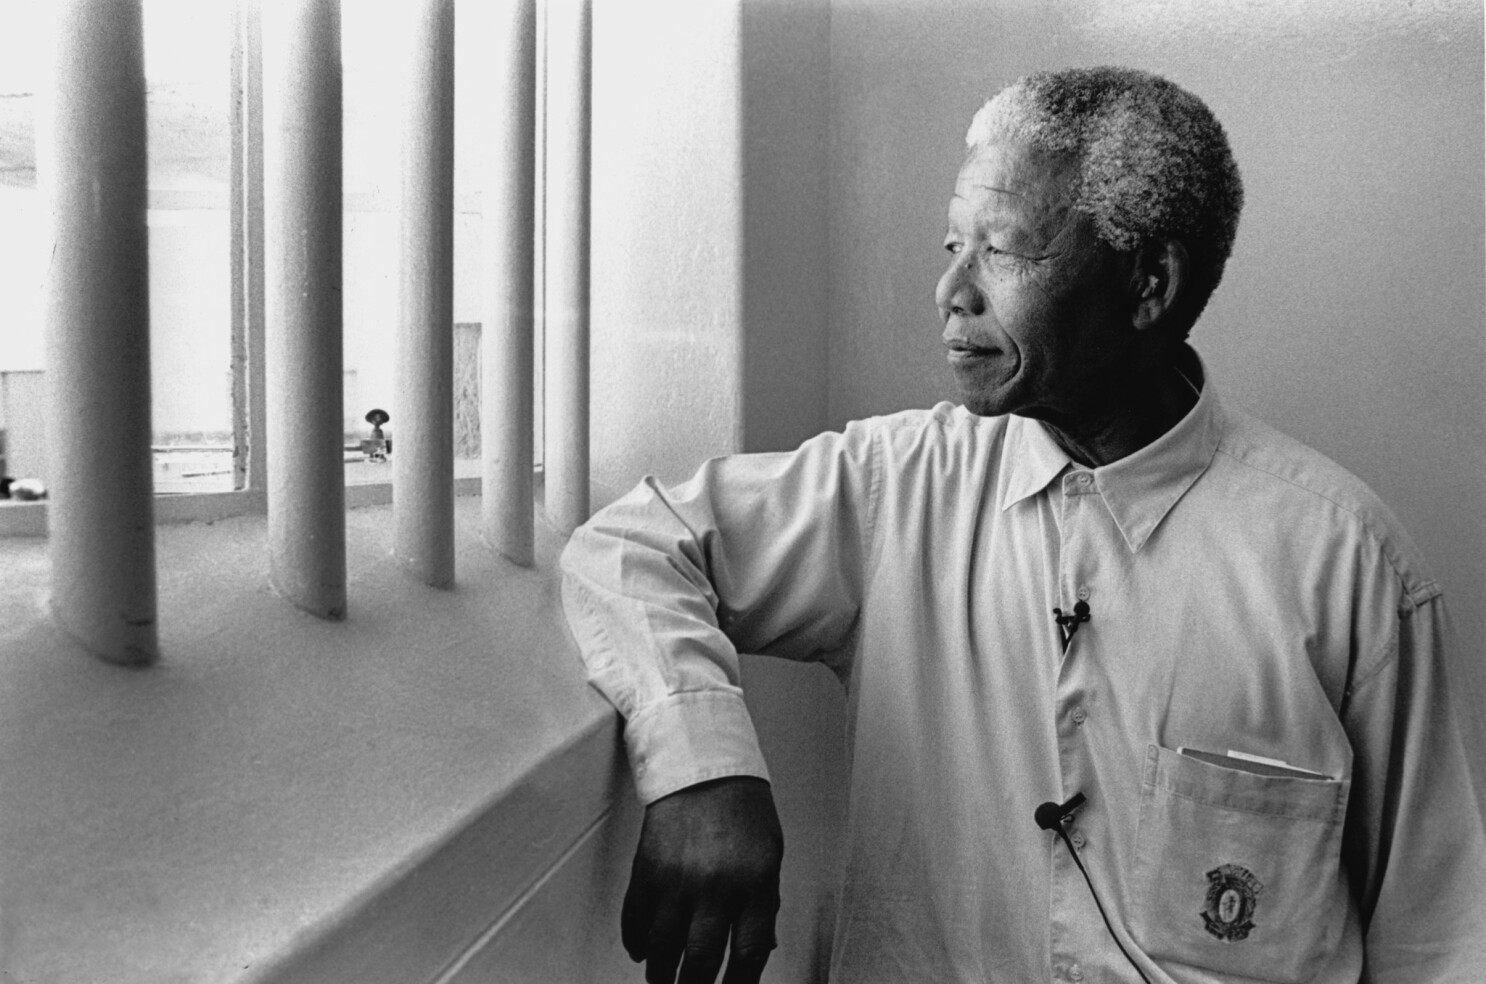 Robben Island: The place that changed Nelson Mandela - Los Angeles Times